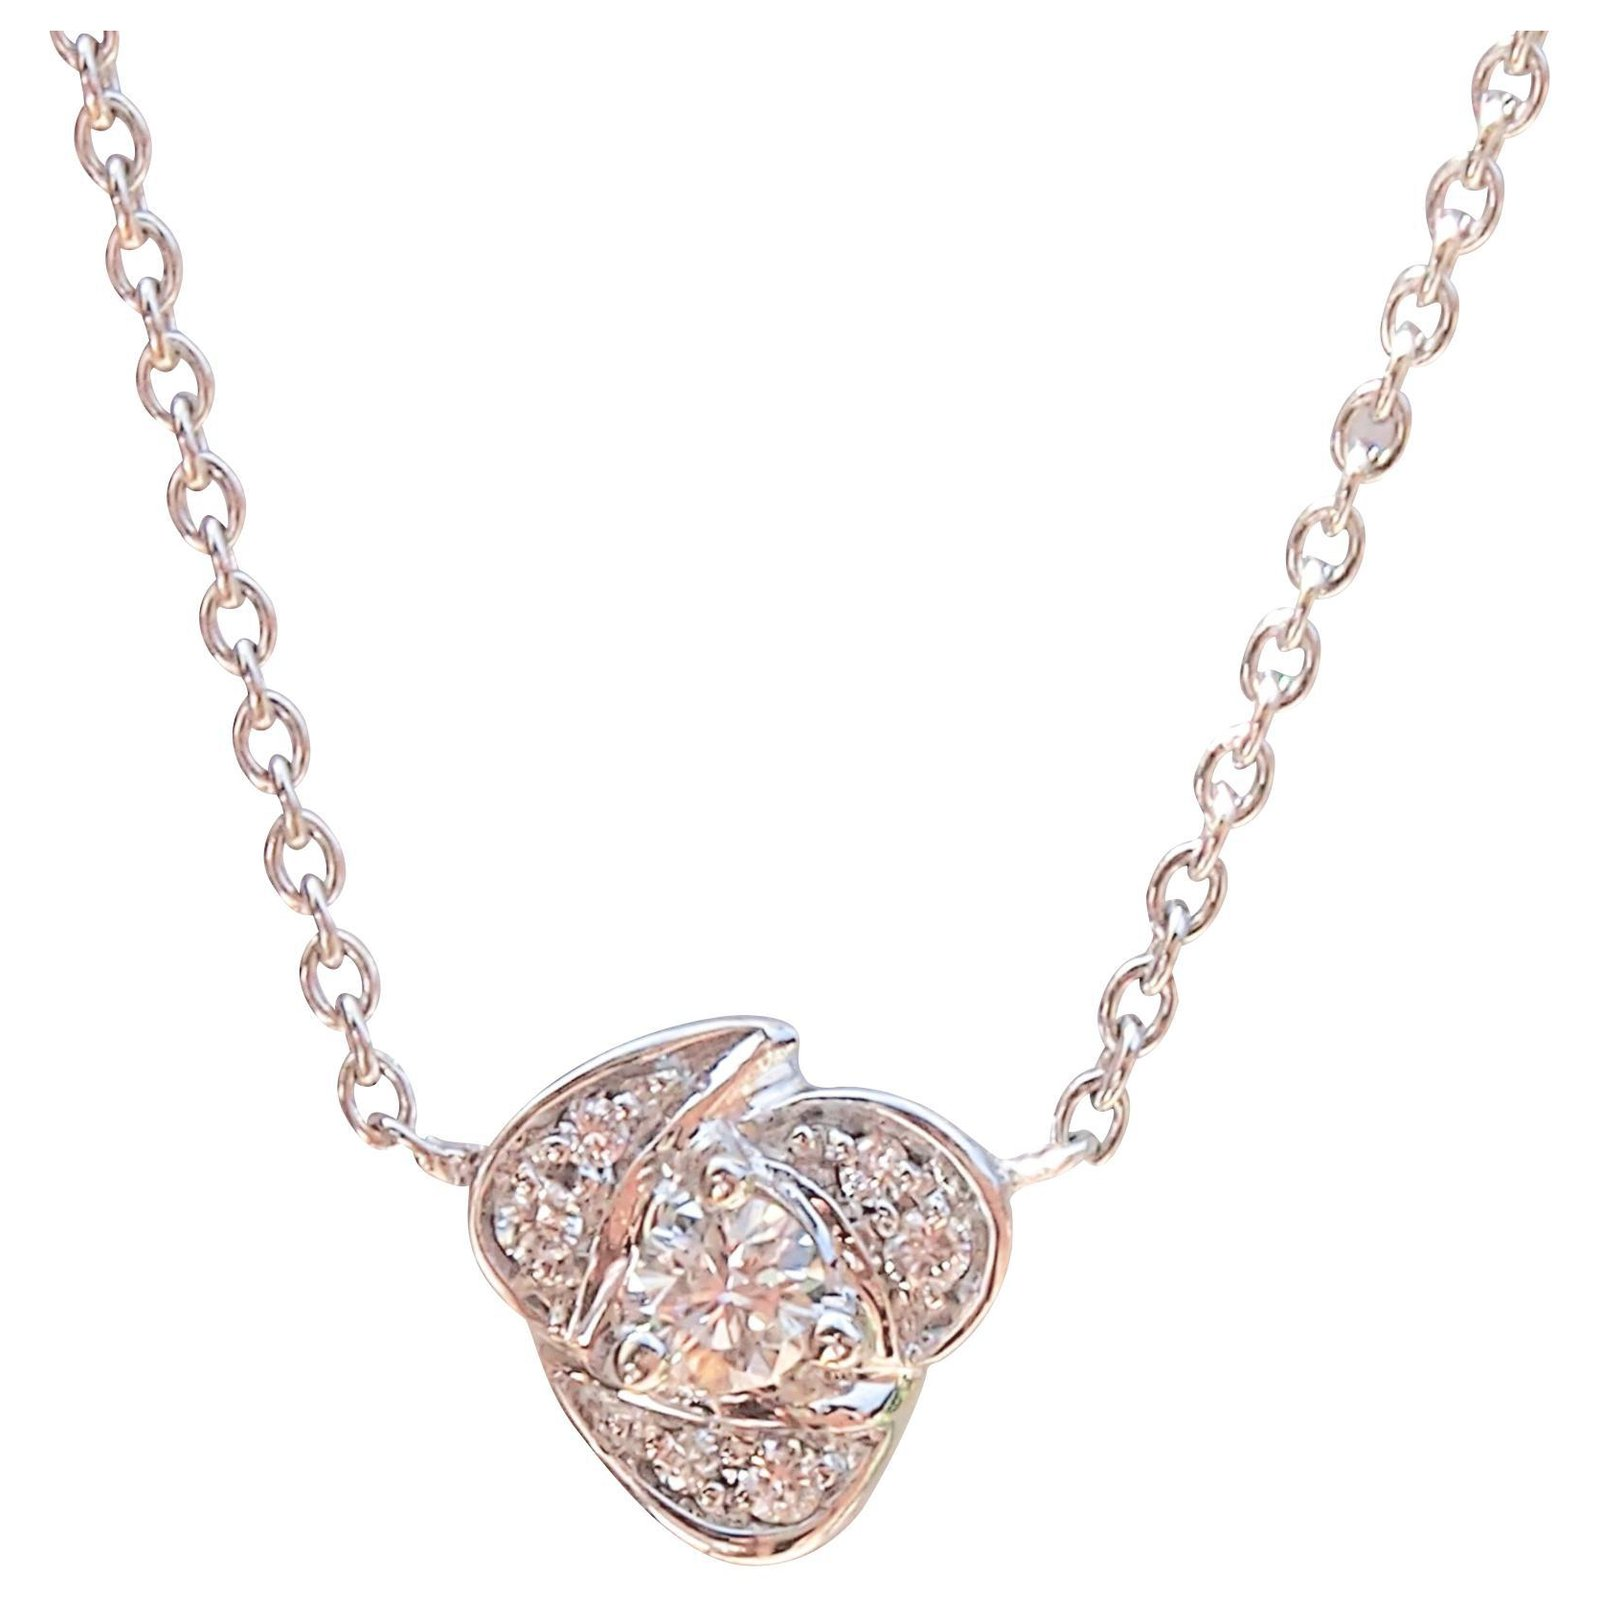 f6636cc4e7cce BEERS Gold and Diamond Necklace